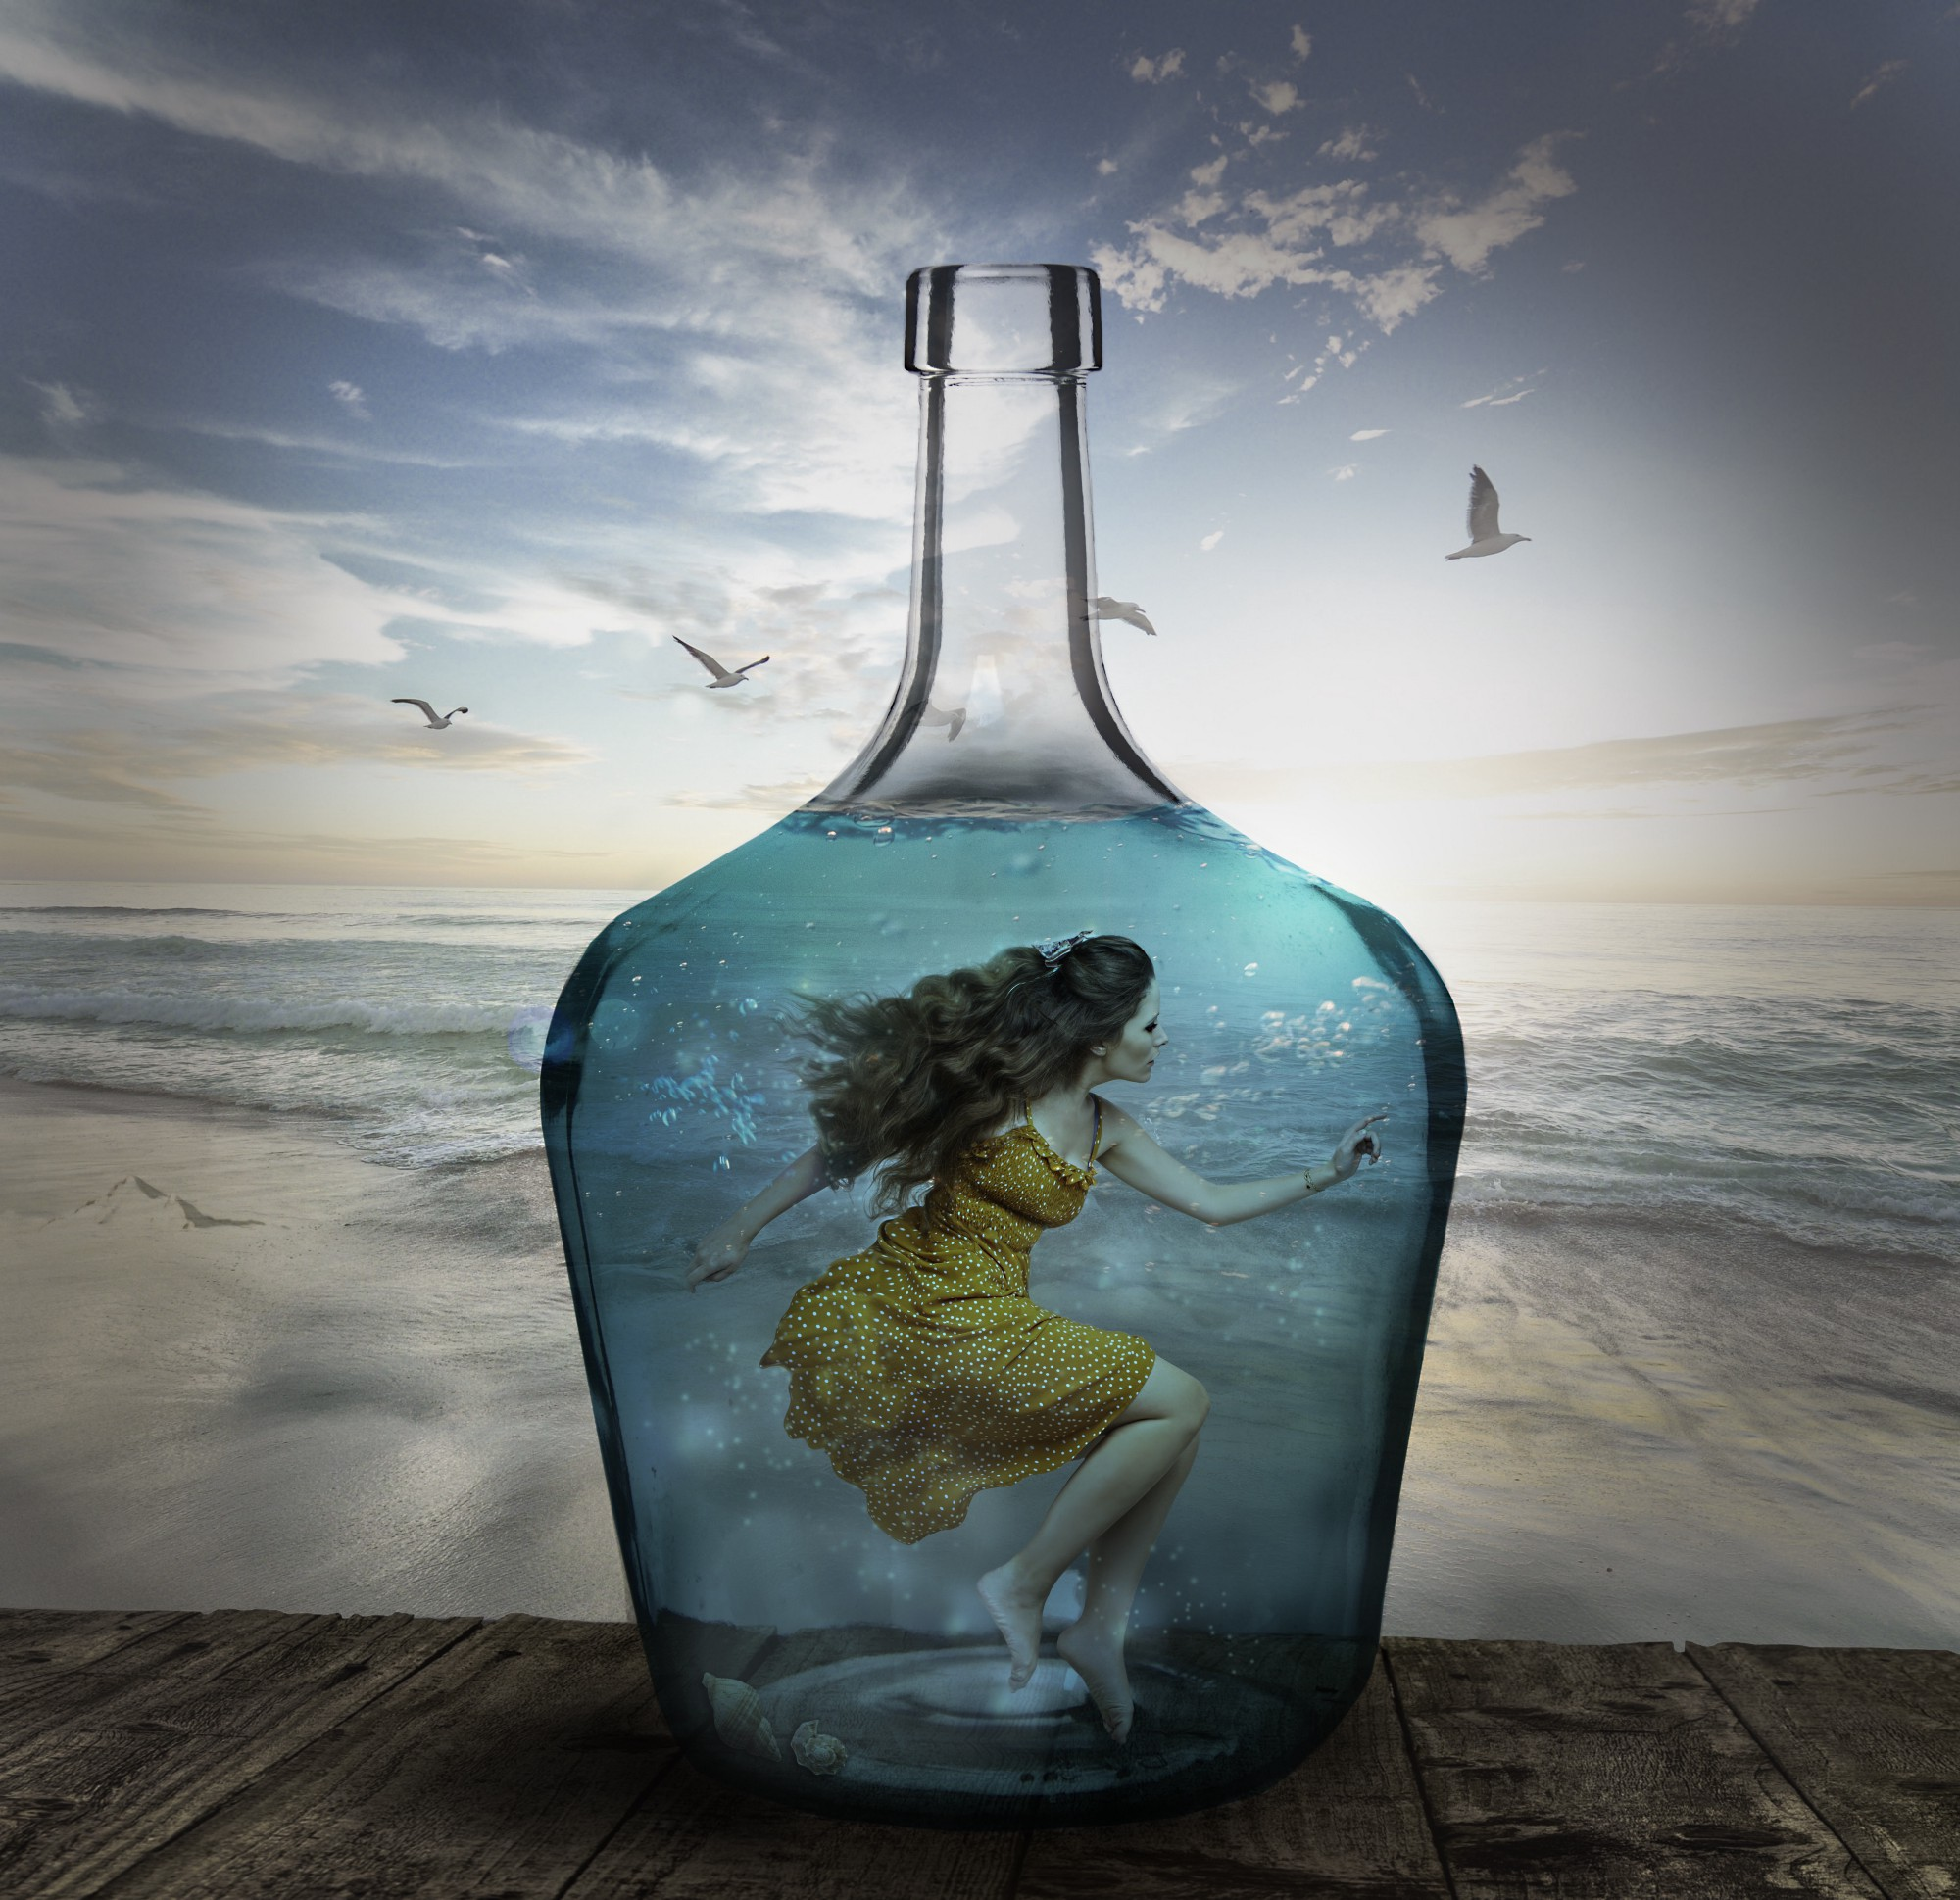 A woman is trapped inside a water-filled bottle. The beach and seagulls are in the background.